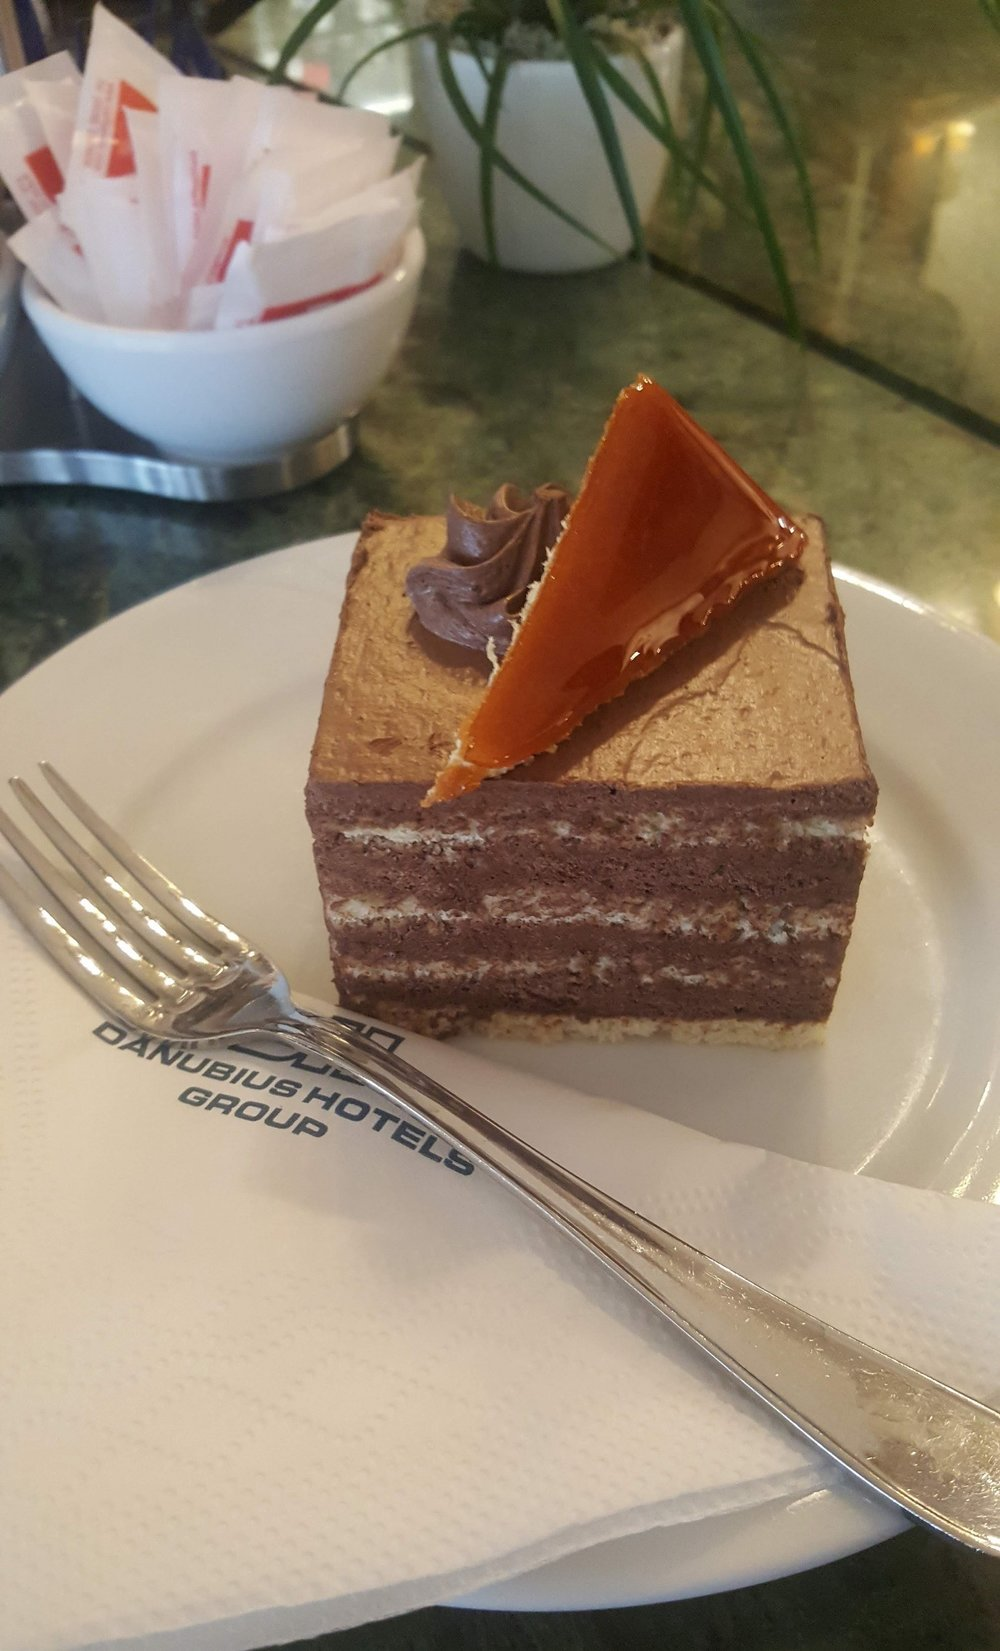 Pictured: A slice of Dobos cake. Photographer: Ruxandra Chitac.